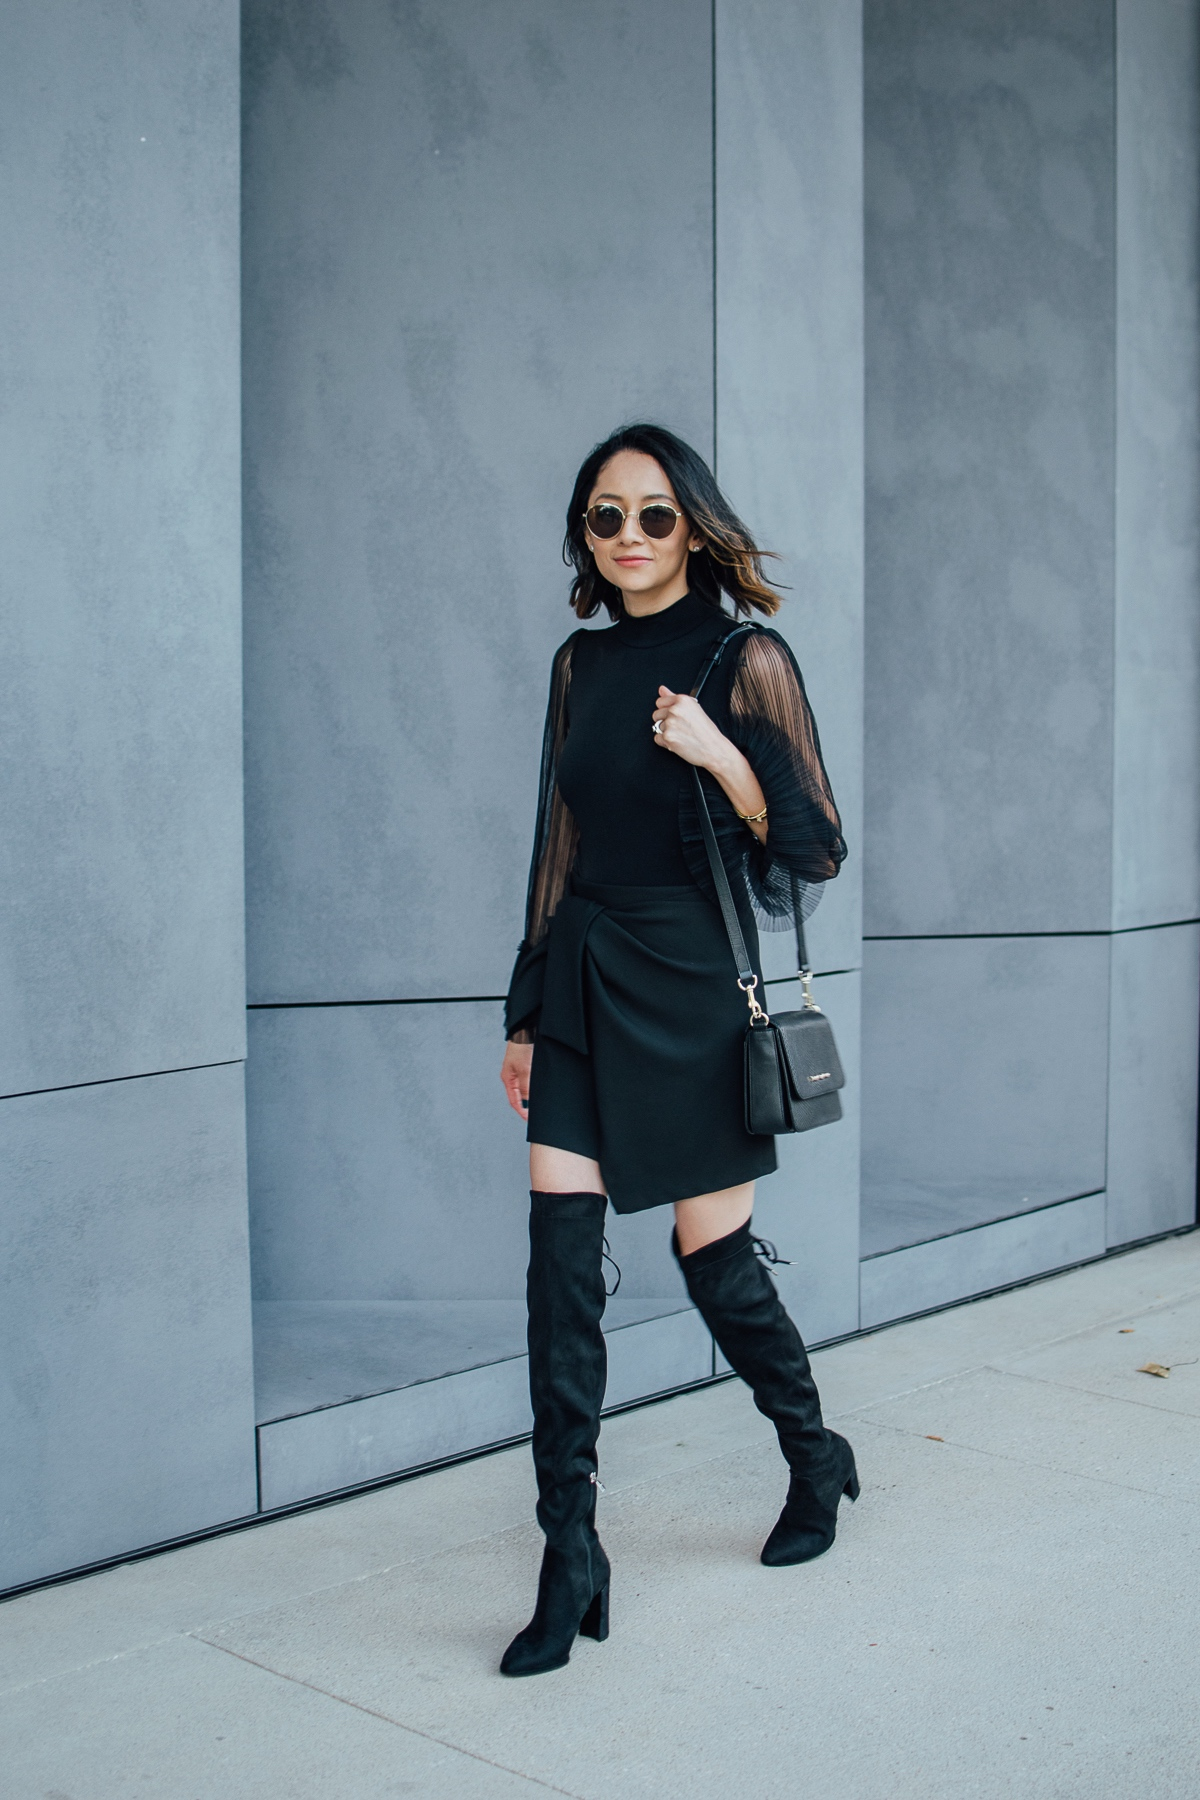 Style blogger Lilly Beltran of Daily Craving in an all black fall look with a bodysuit wrap skirt and OTK boots